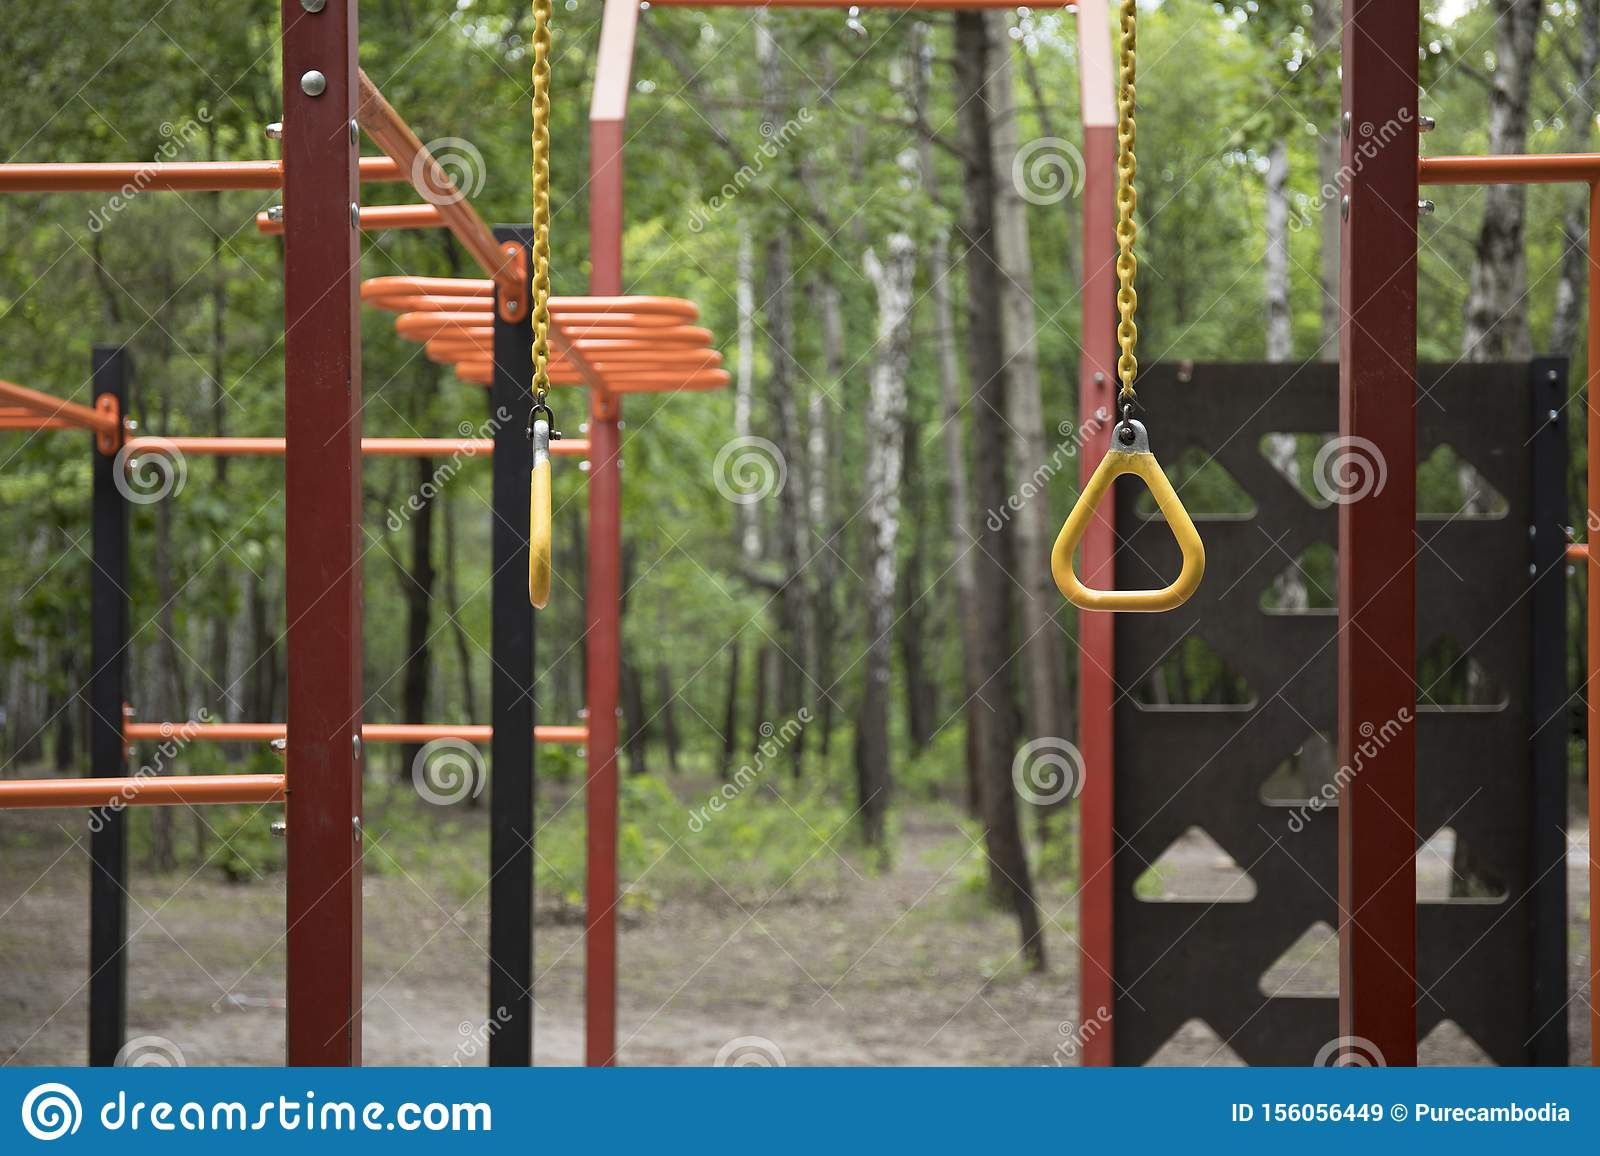 Closeup view of a monkey bar street sport gym metal construction for pulling and climbing on the sports field